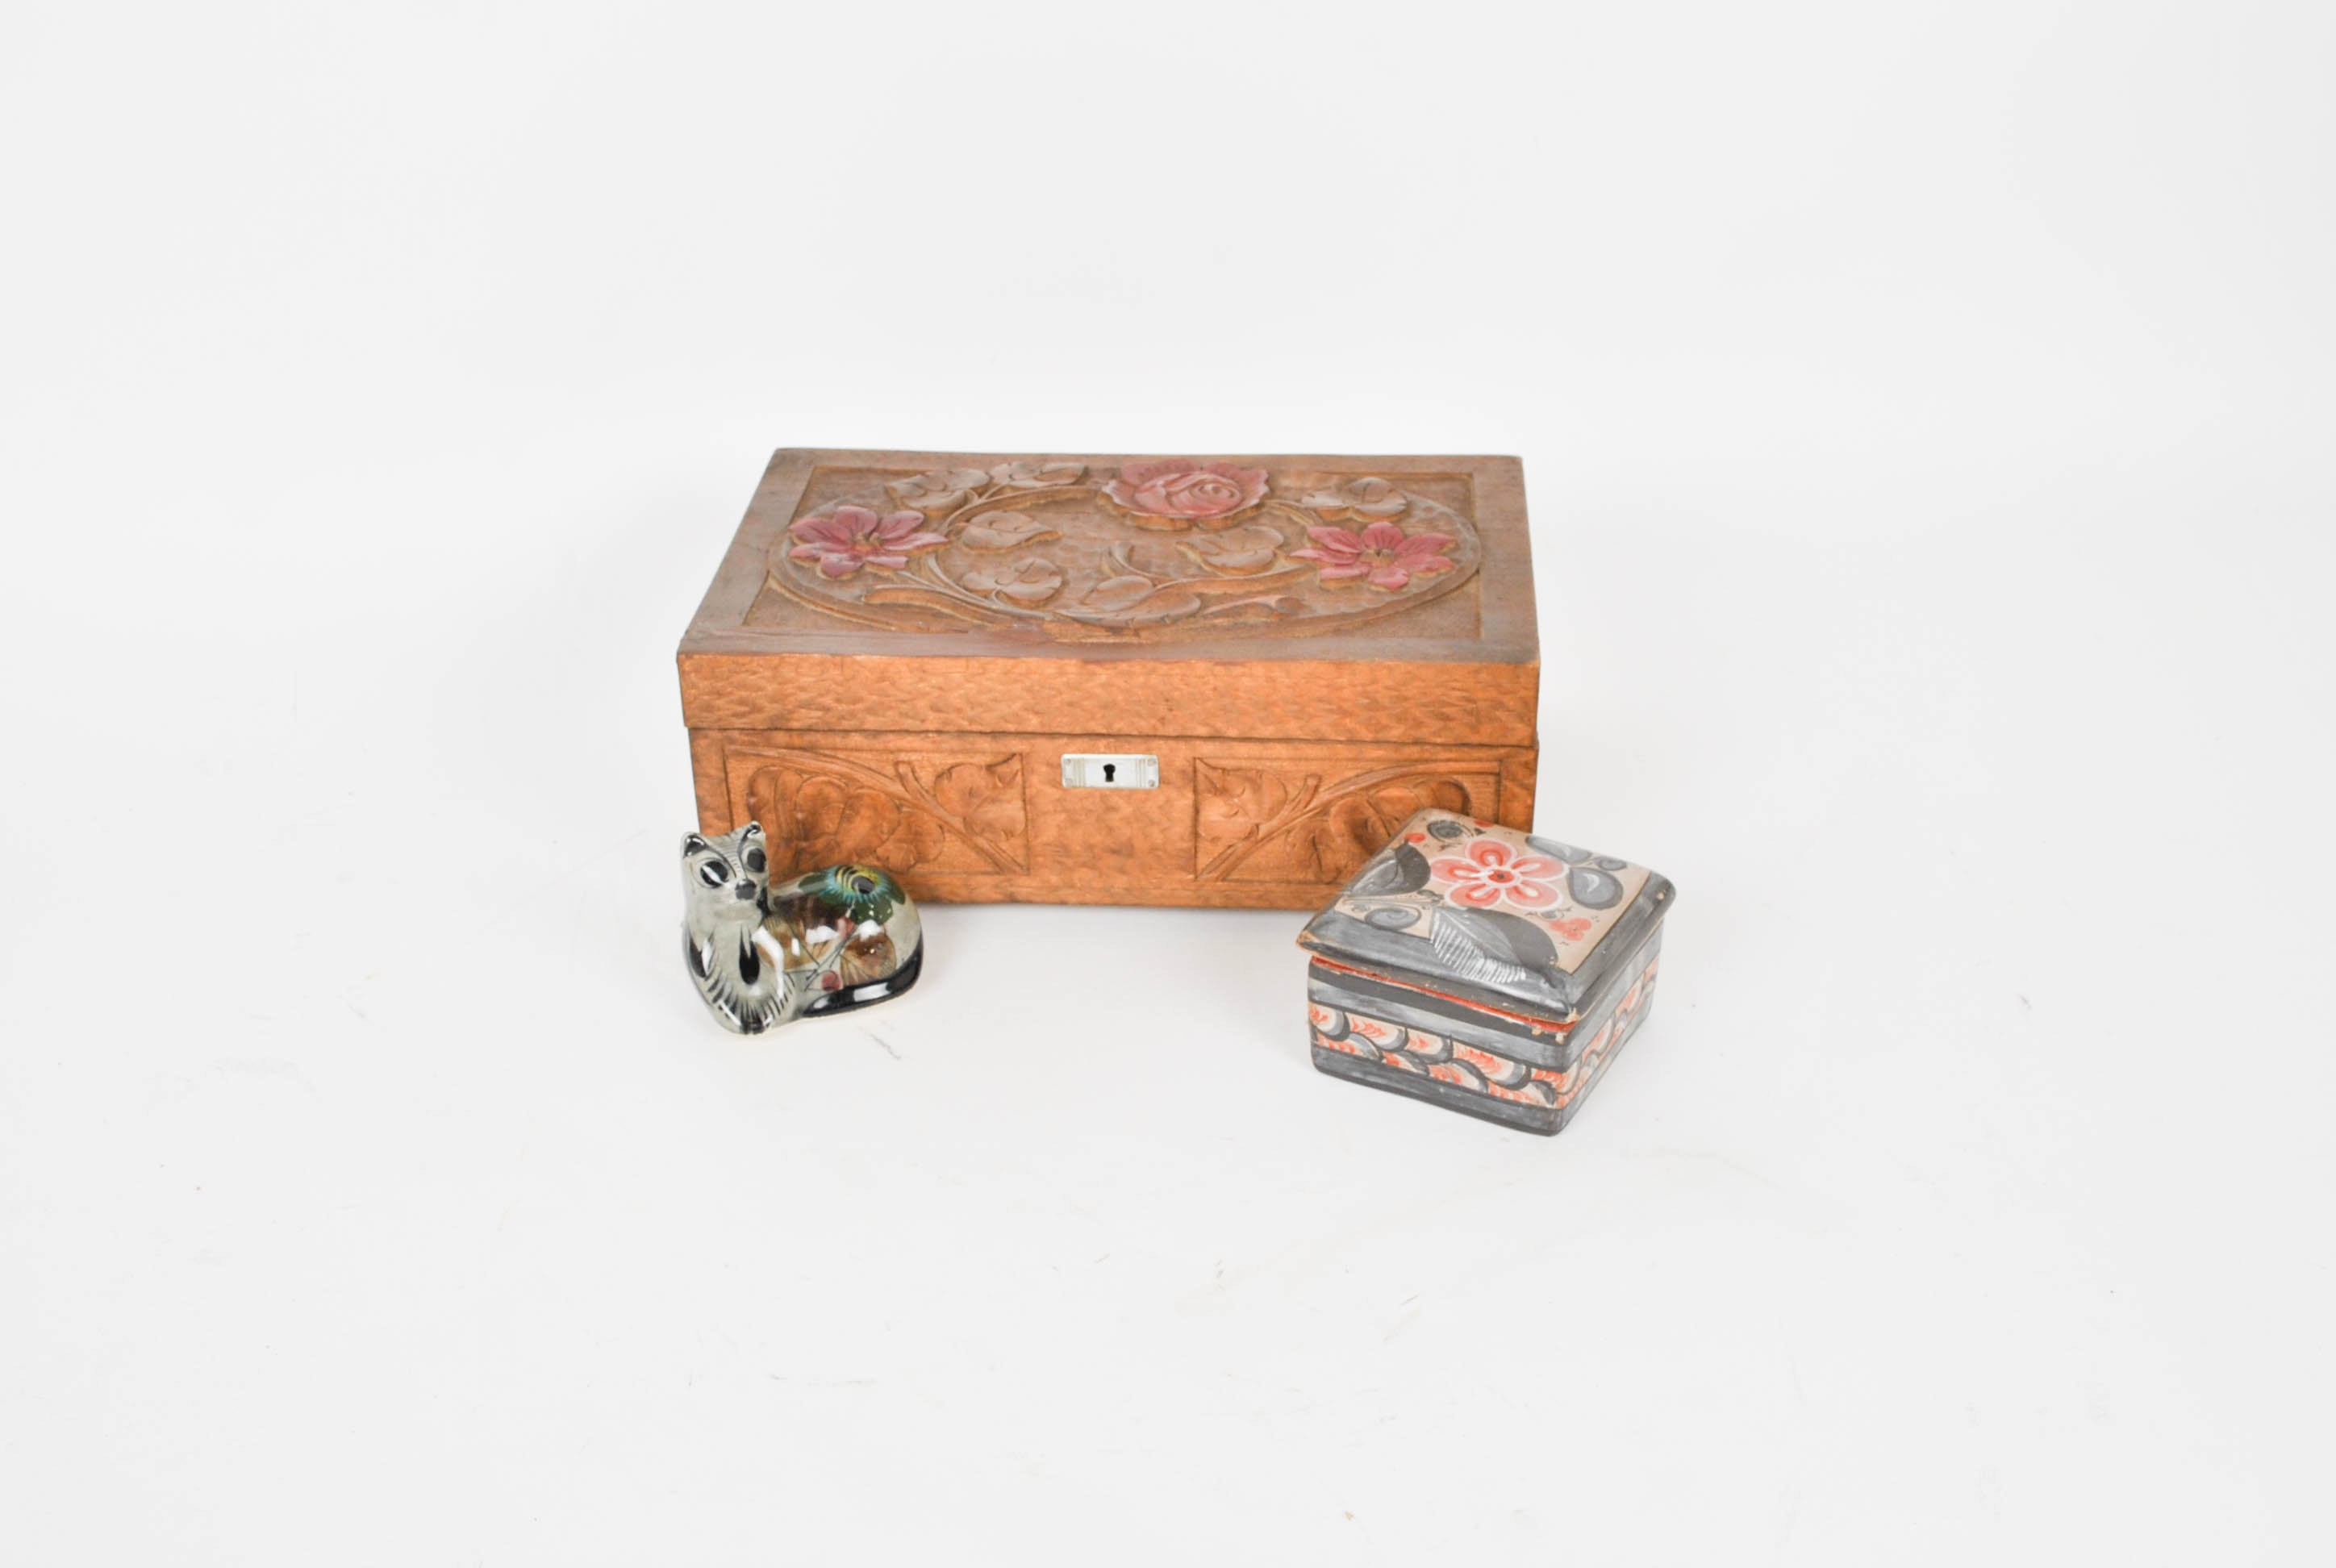 Wooden Carved Box and Talavera Miniature Cat